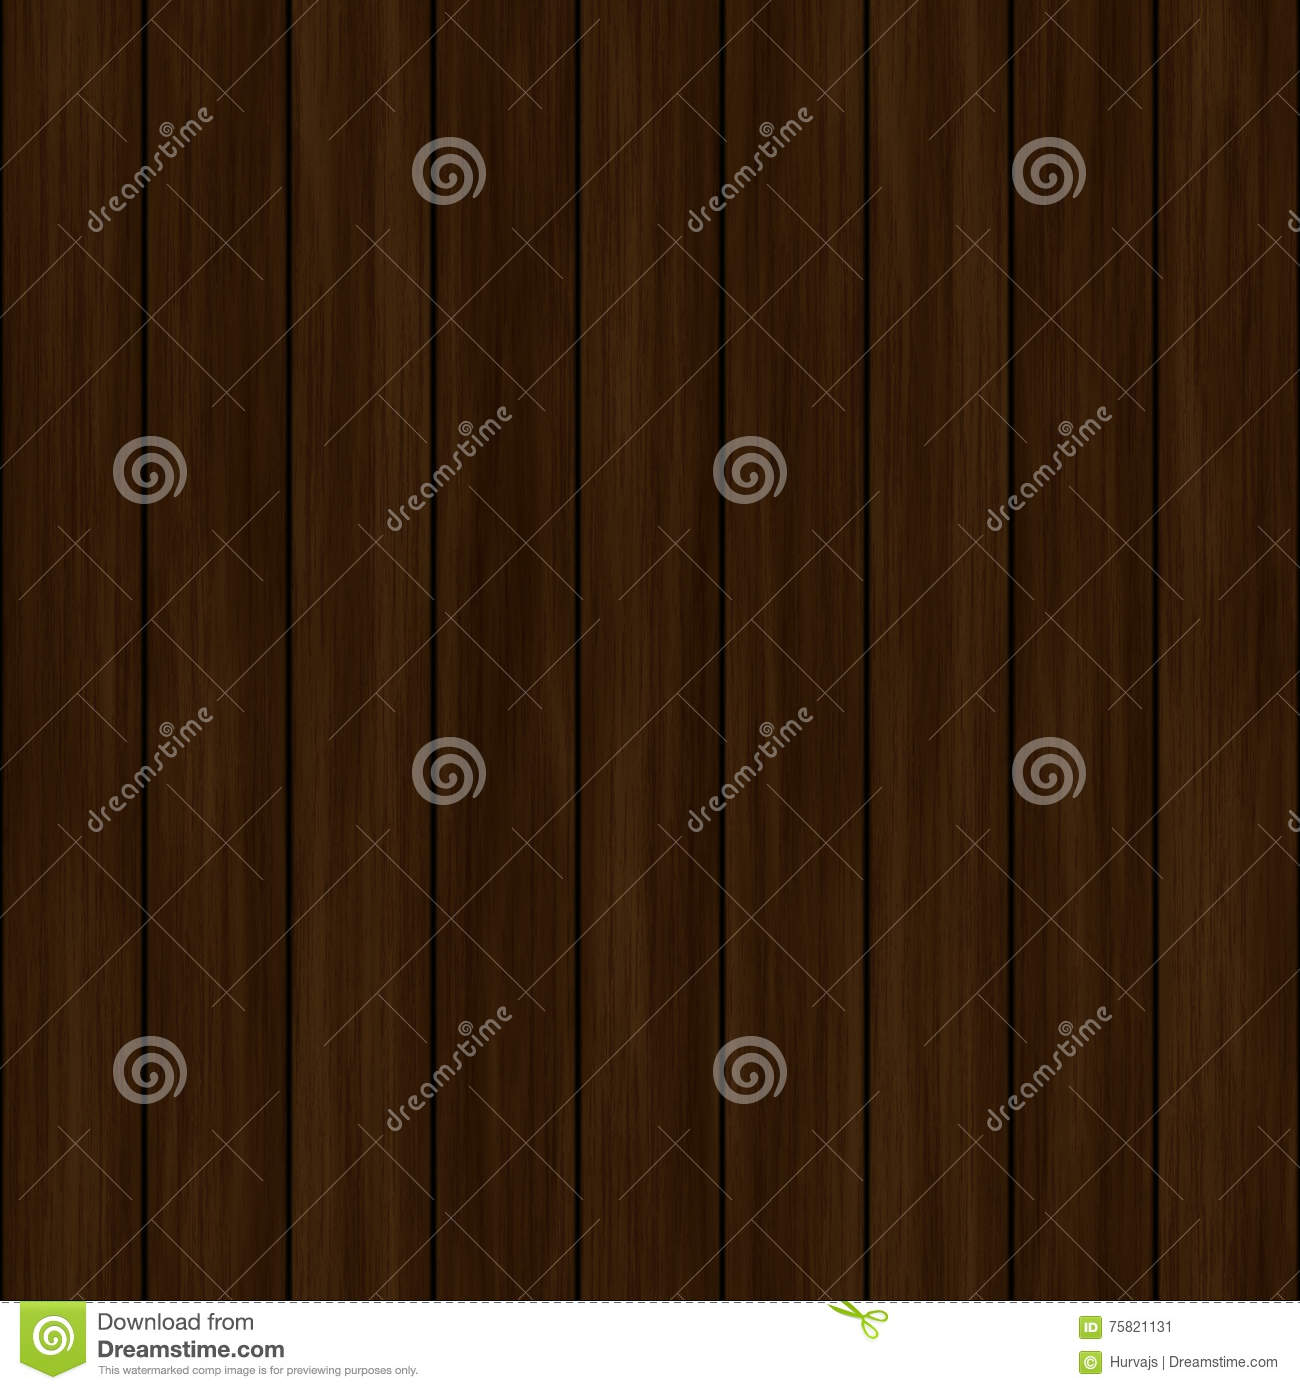 dark hardwood background. High Quality Resolution Seamless Wood Texture. Stock Illustration - Of Background, Brown: 75821131 Dark Hardwood Background ,